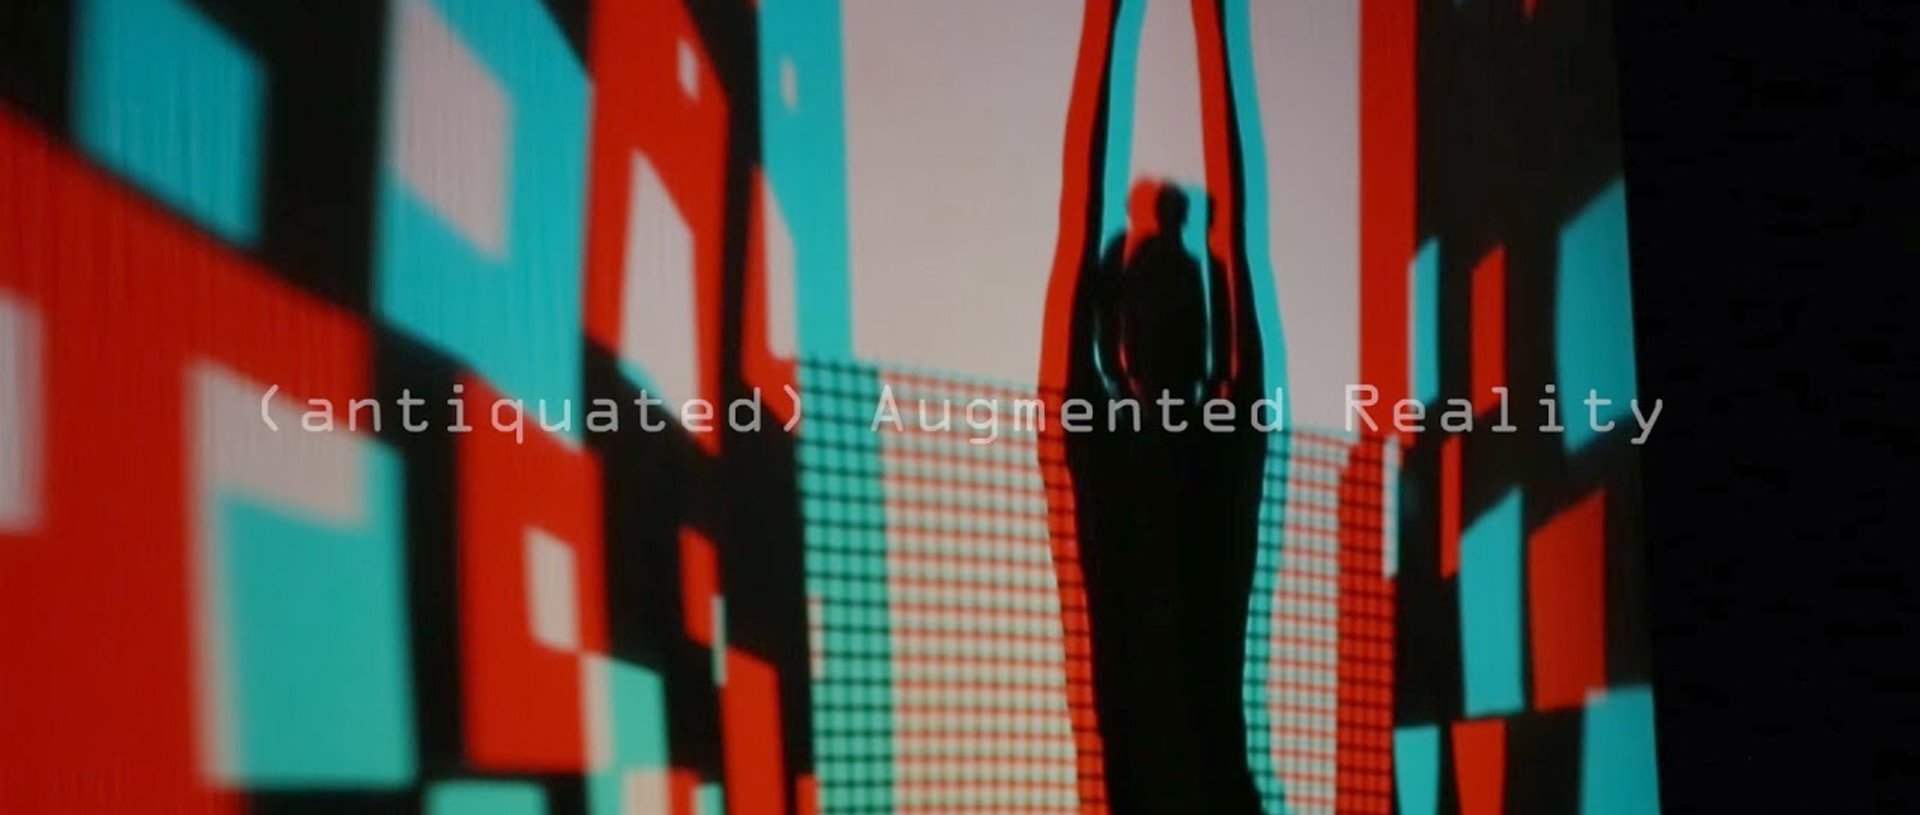 (antiquated) Augmented Reality